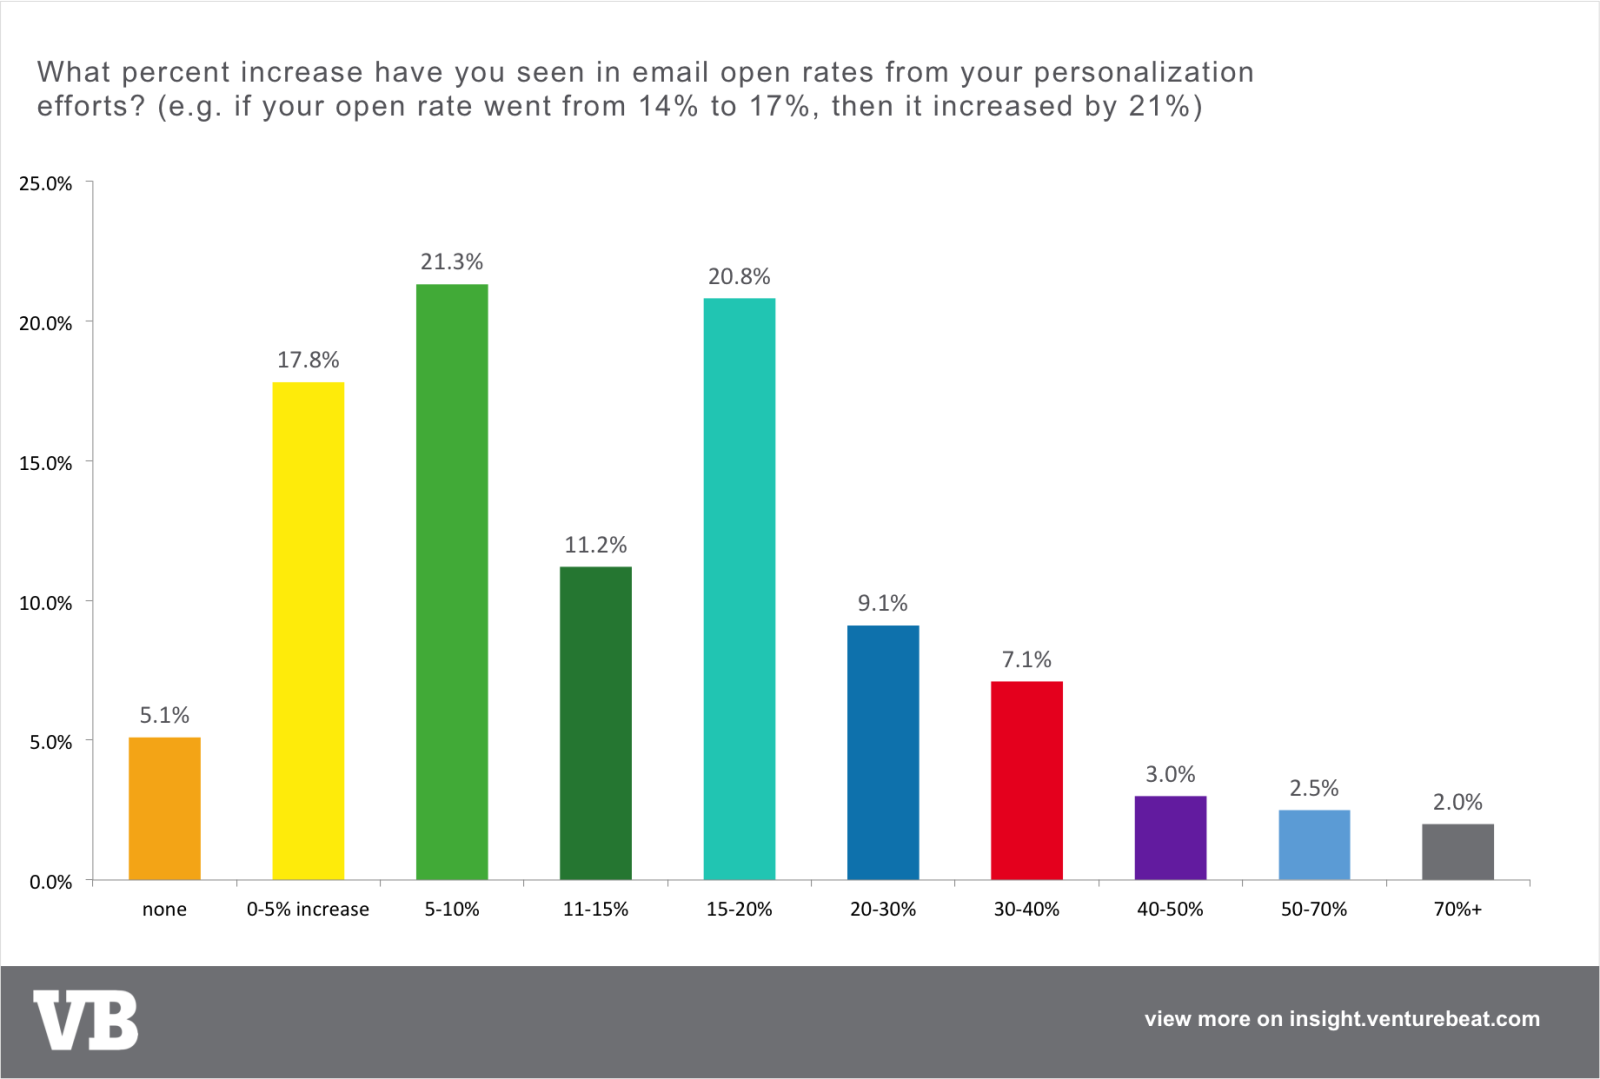 What percent increase have you seen in email open rates from your personalization efforts?